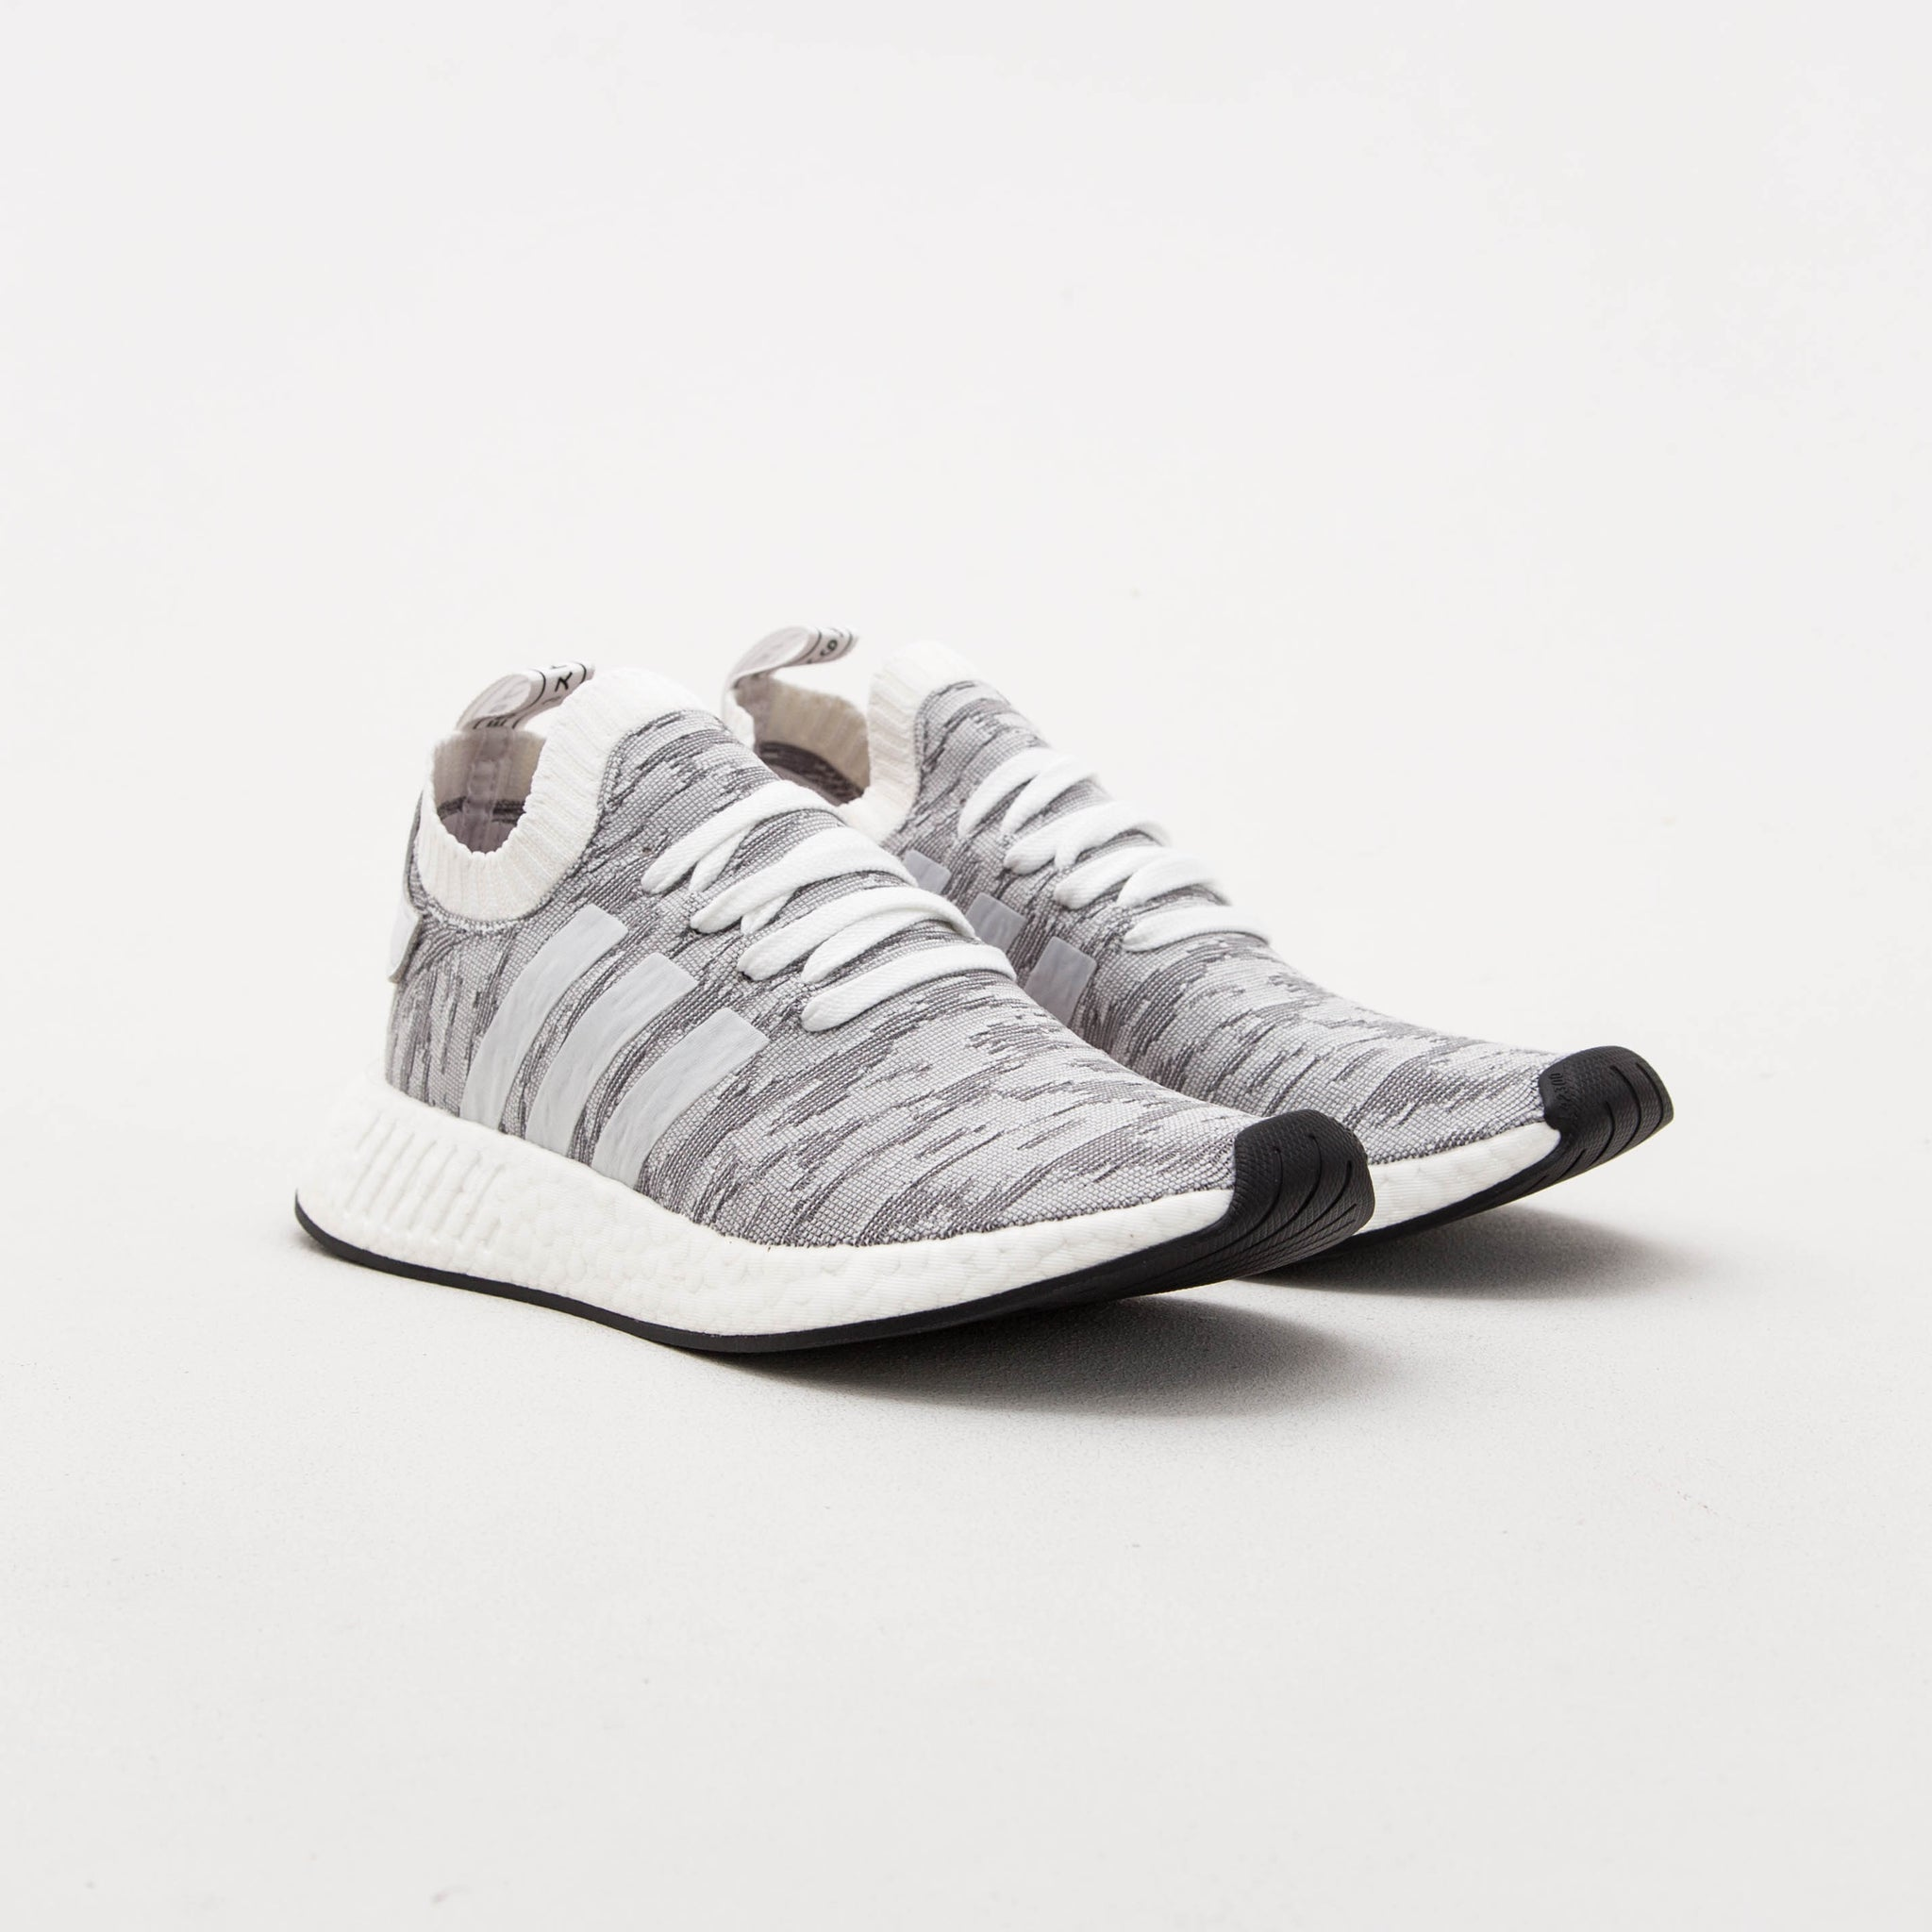 adidas NMD_R2 Primeknit Sneakers - Grey / White BY9410 | Astore